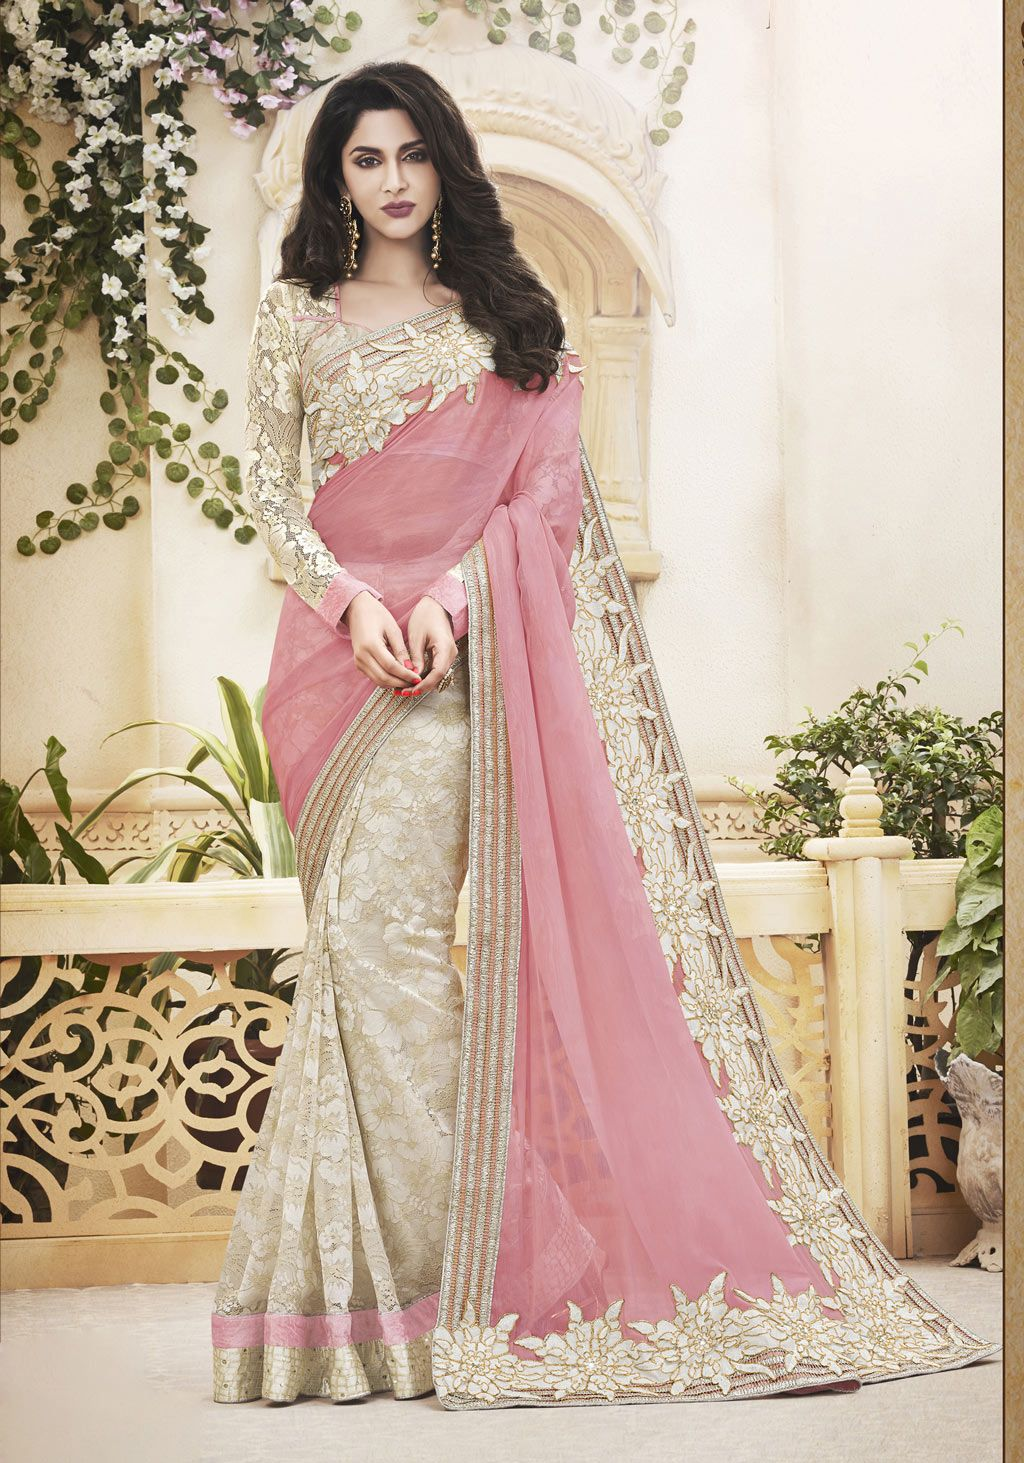 Image result for saree | Photo | Pinterest | India, Bodas hindúes y ...